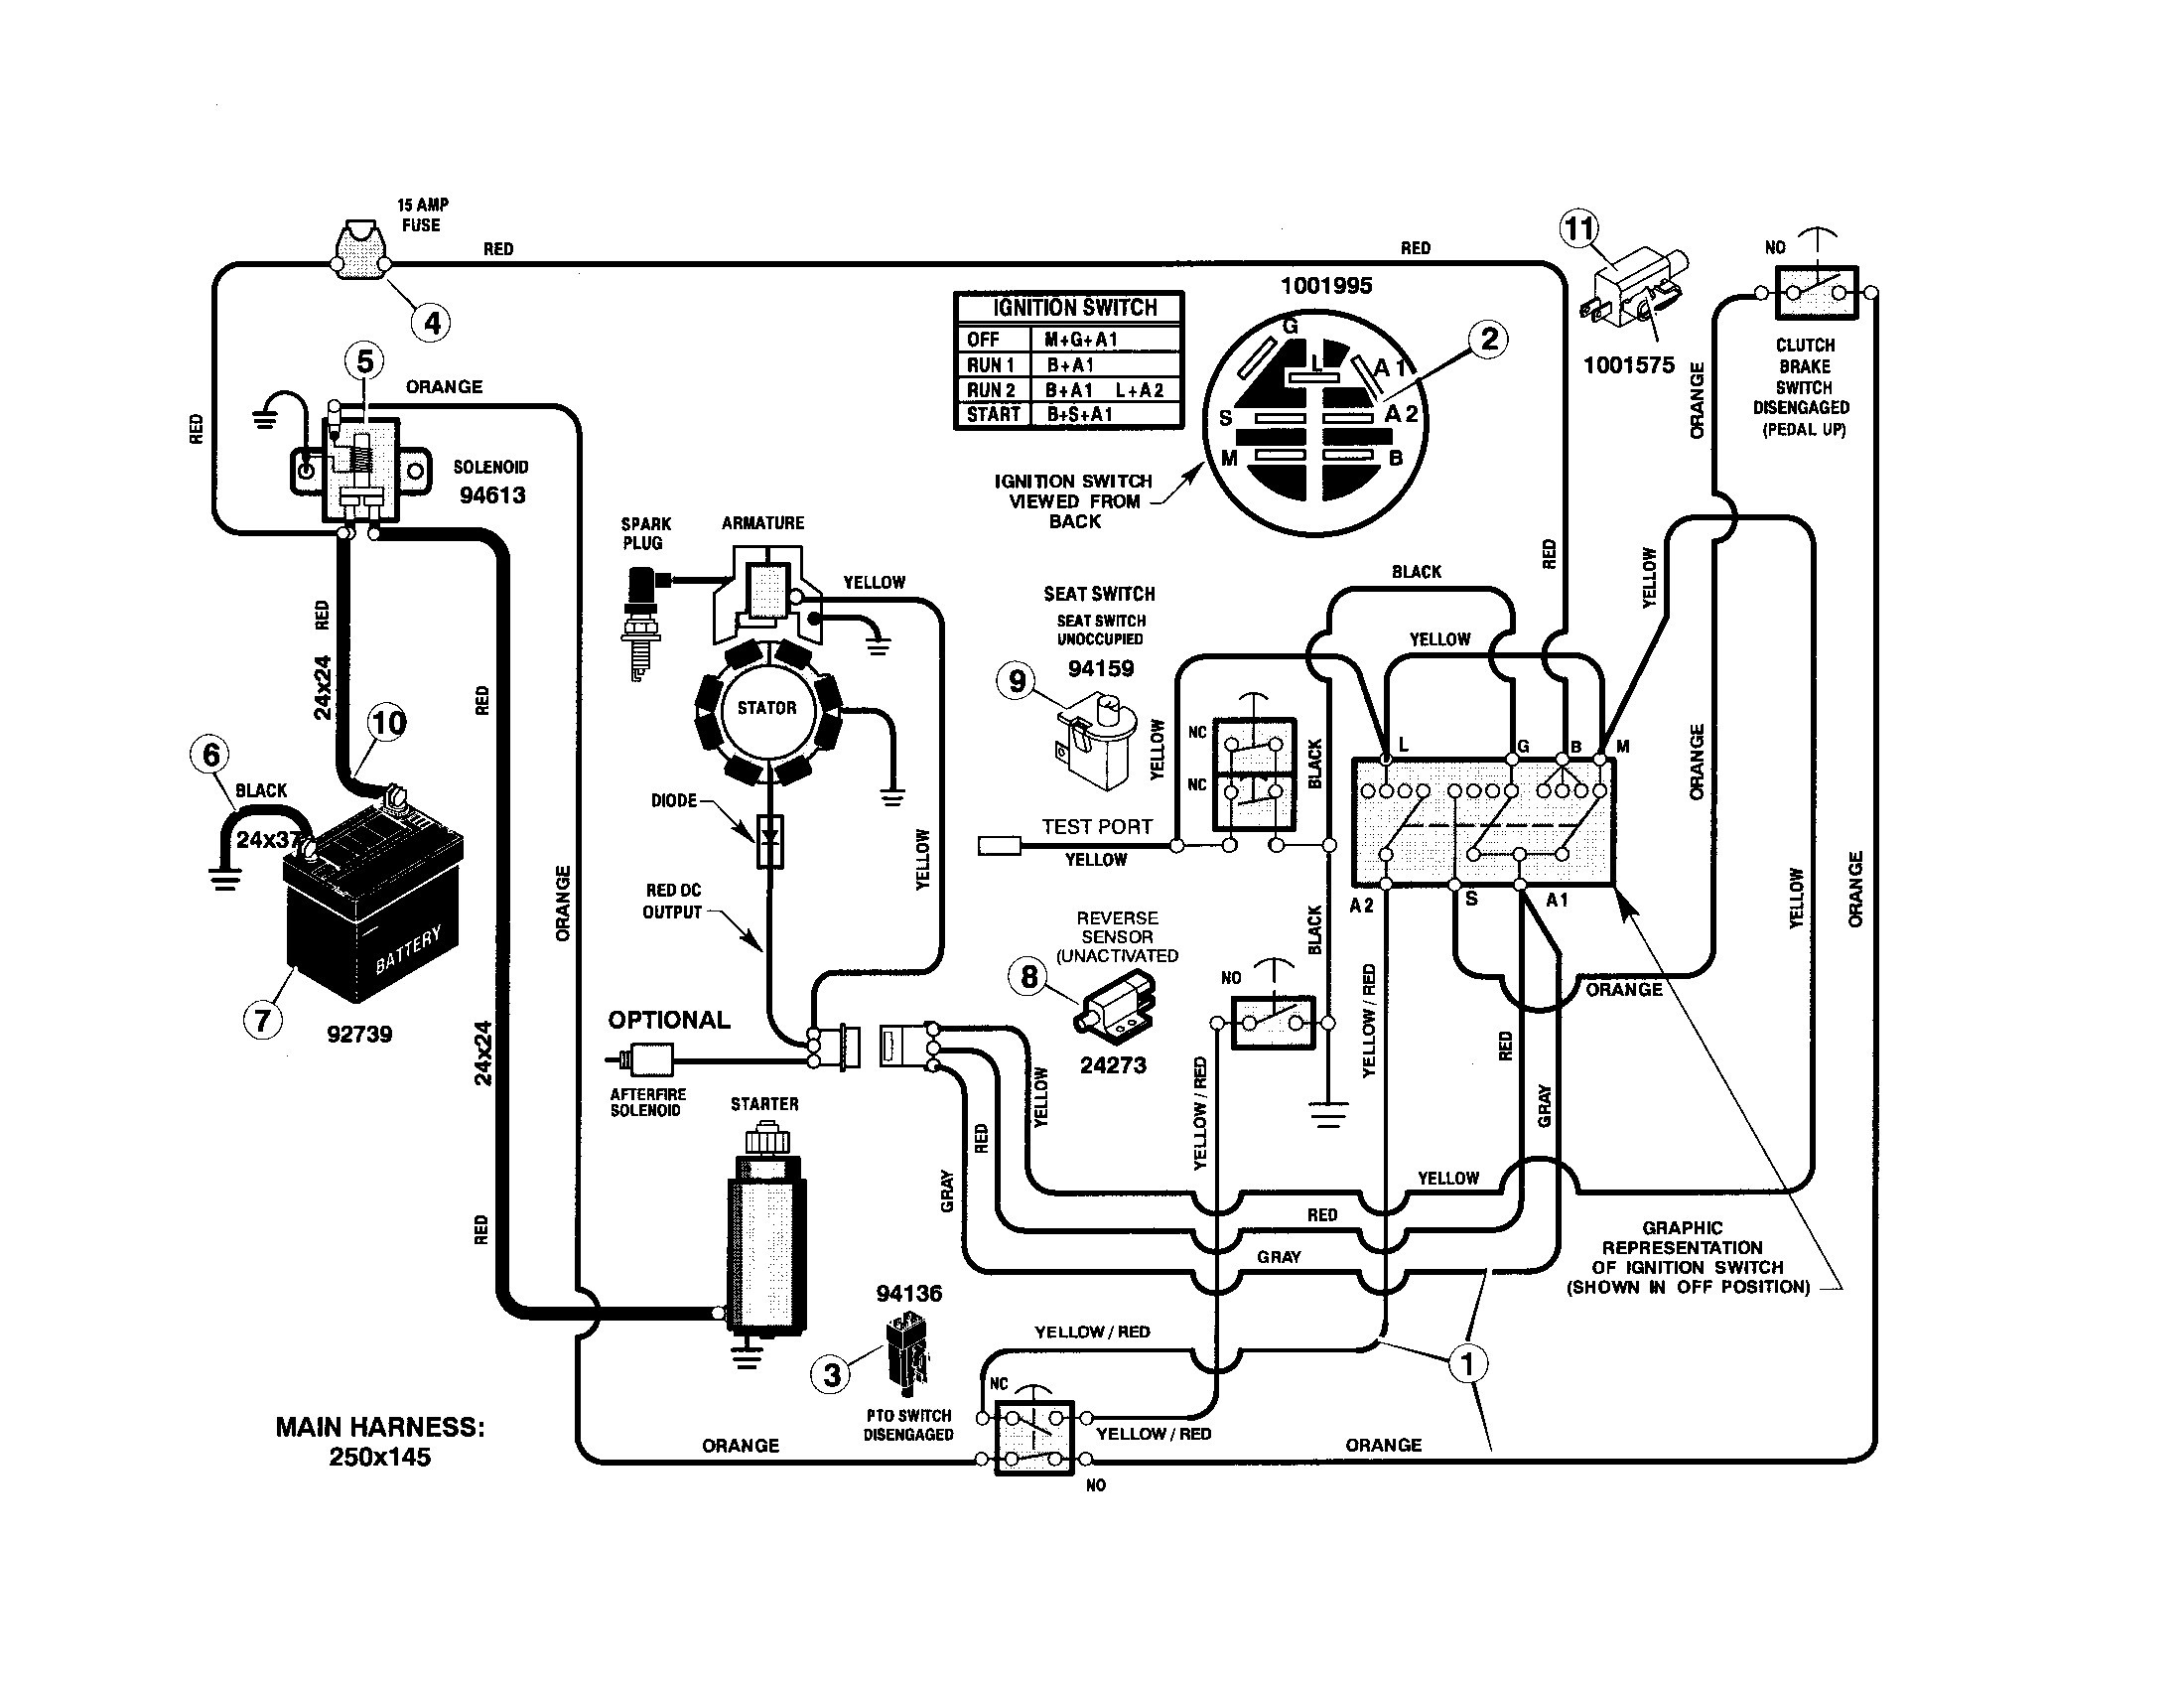 Wiring Diagram For Troy Bilt Riding Lawn Mower